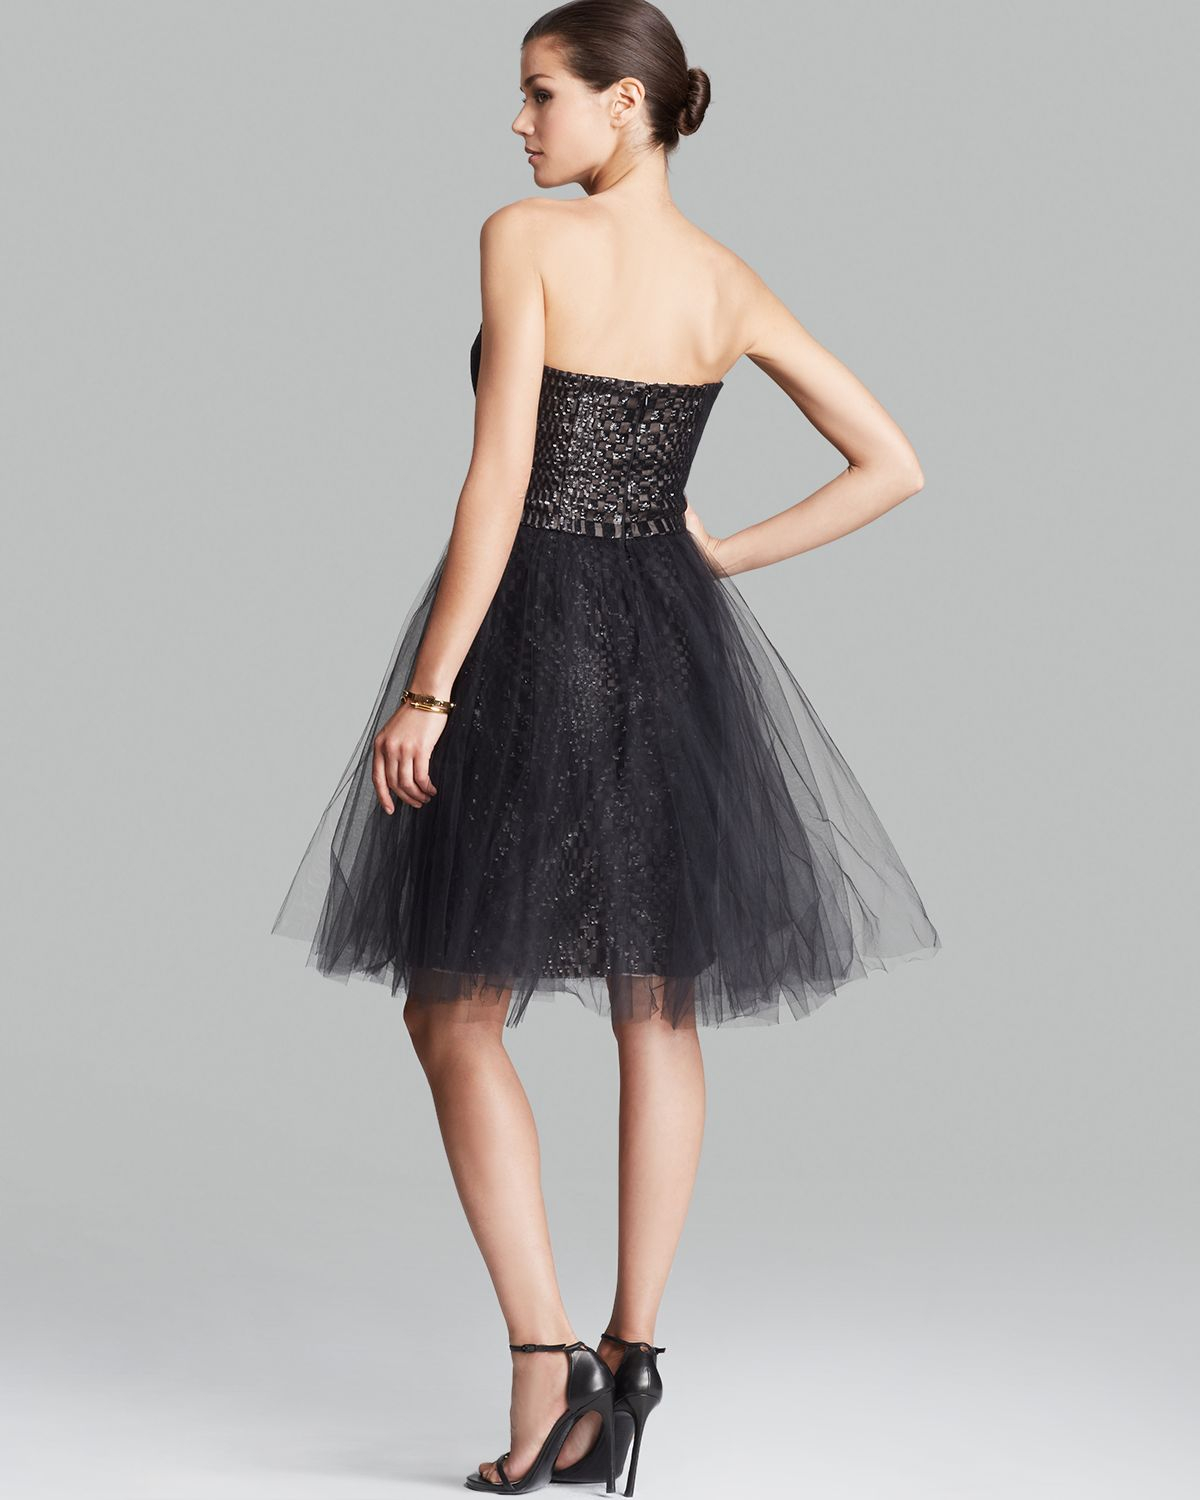 Strapless Tulle Dress